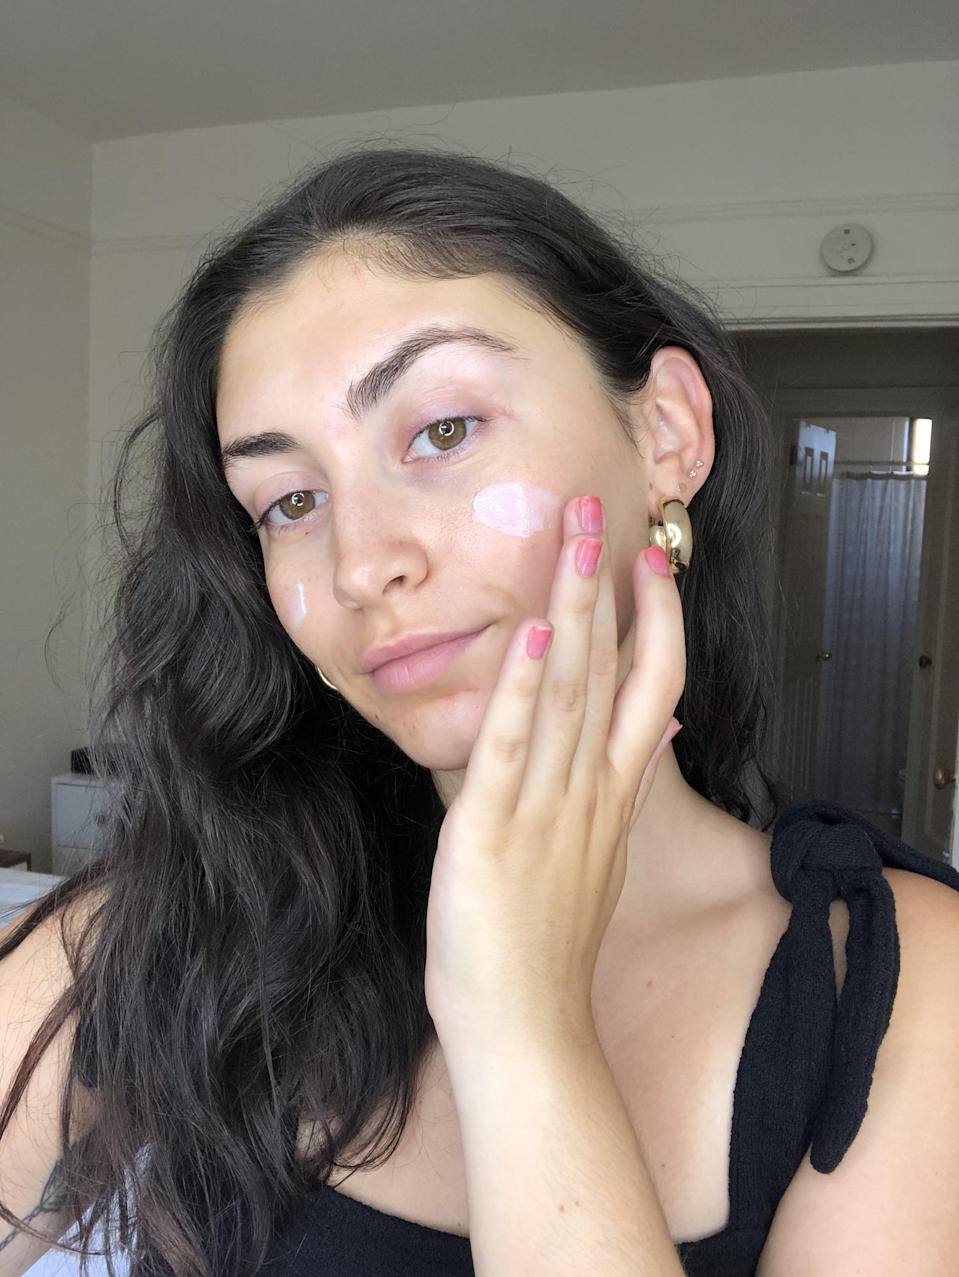 <p>When rubbed in it feels deeply hydrating but isn't heavy and when left to absorb for a minute or two, it disappears. The texture also helps blur the appearance of your pores. It's formulated with honey for moisture, turmeric to soothe, and niacinamide to even skin tone. And that's all without makeup. Because Huda Kattan knows the struggles of having acne, it's also safe for sensitive skin, non-comedogenic, and non-acnegenic.</p>